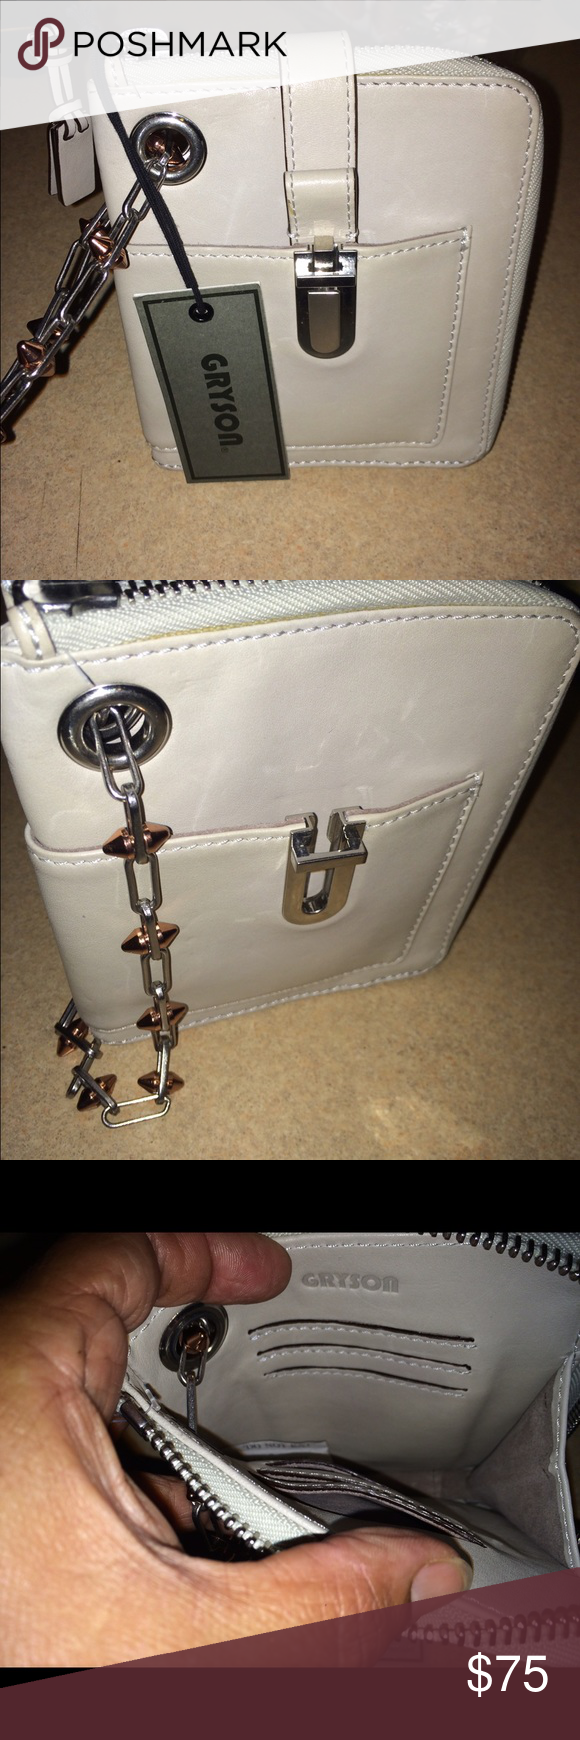 Gryson Calf Leather Wristlet Here is a Gryson Calf Leather Wristlet. It is new with tag Gryson Bags Clutches & Wristlets